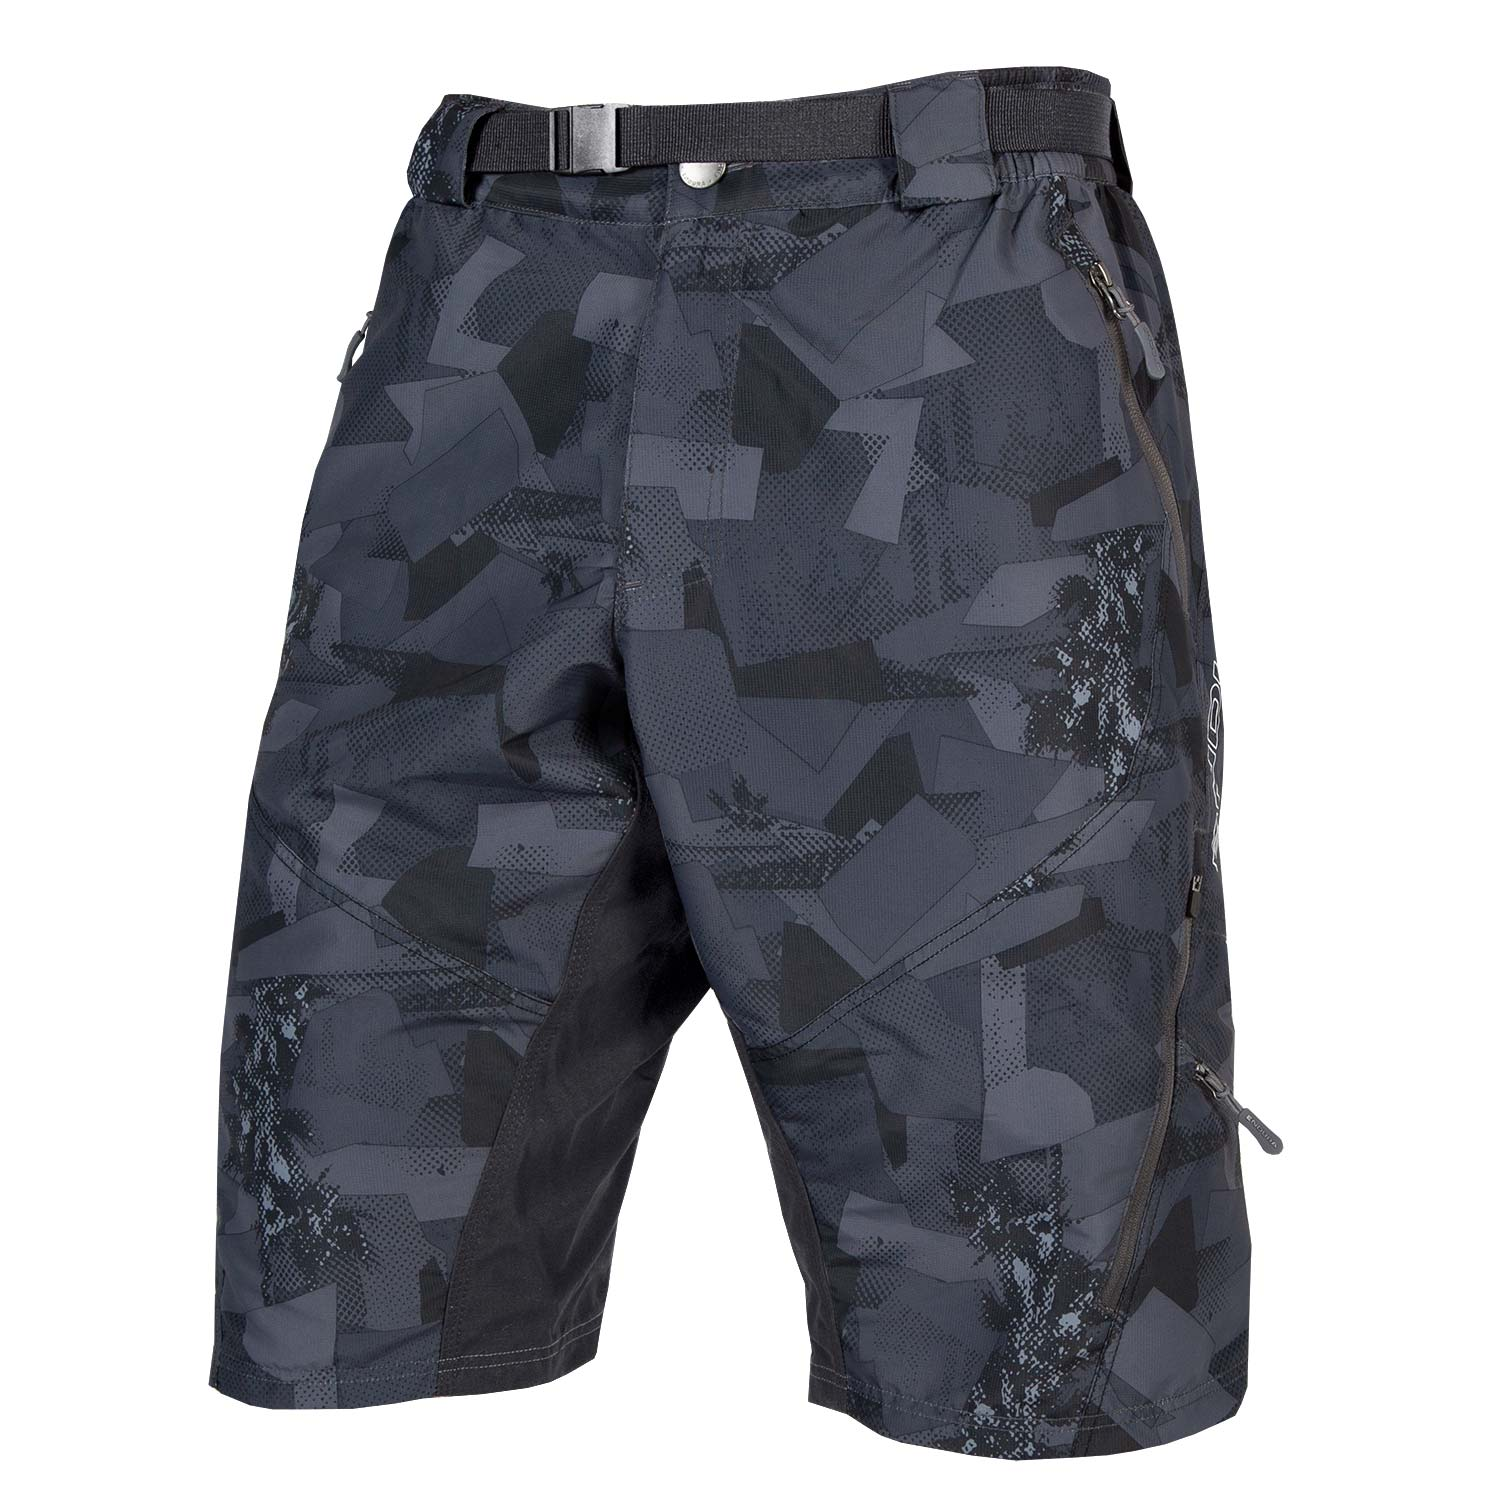 Hummvee Short II with liner Grey Camo